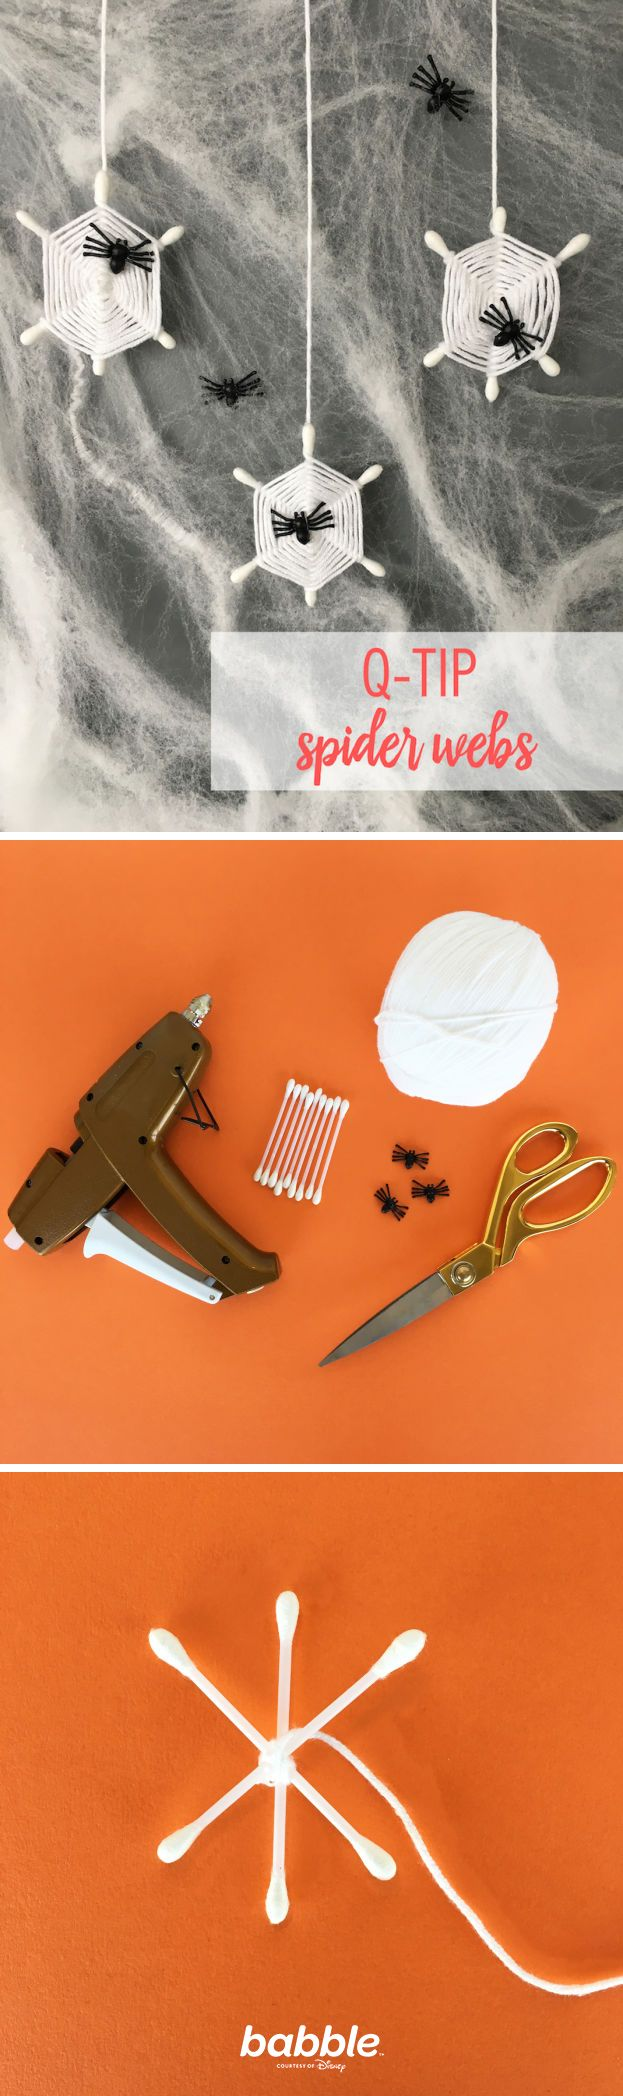 Make some simple, Q-tip Spider Web. This craft is kid-friendly